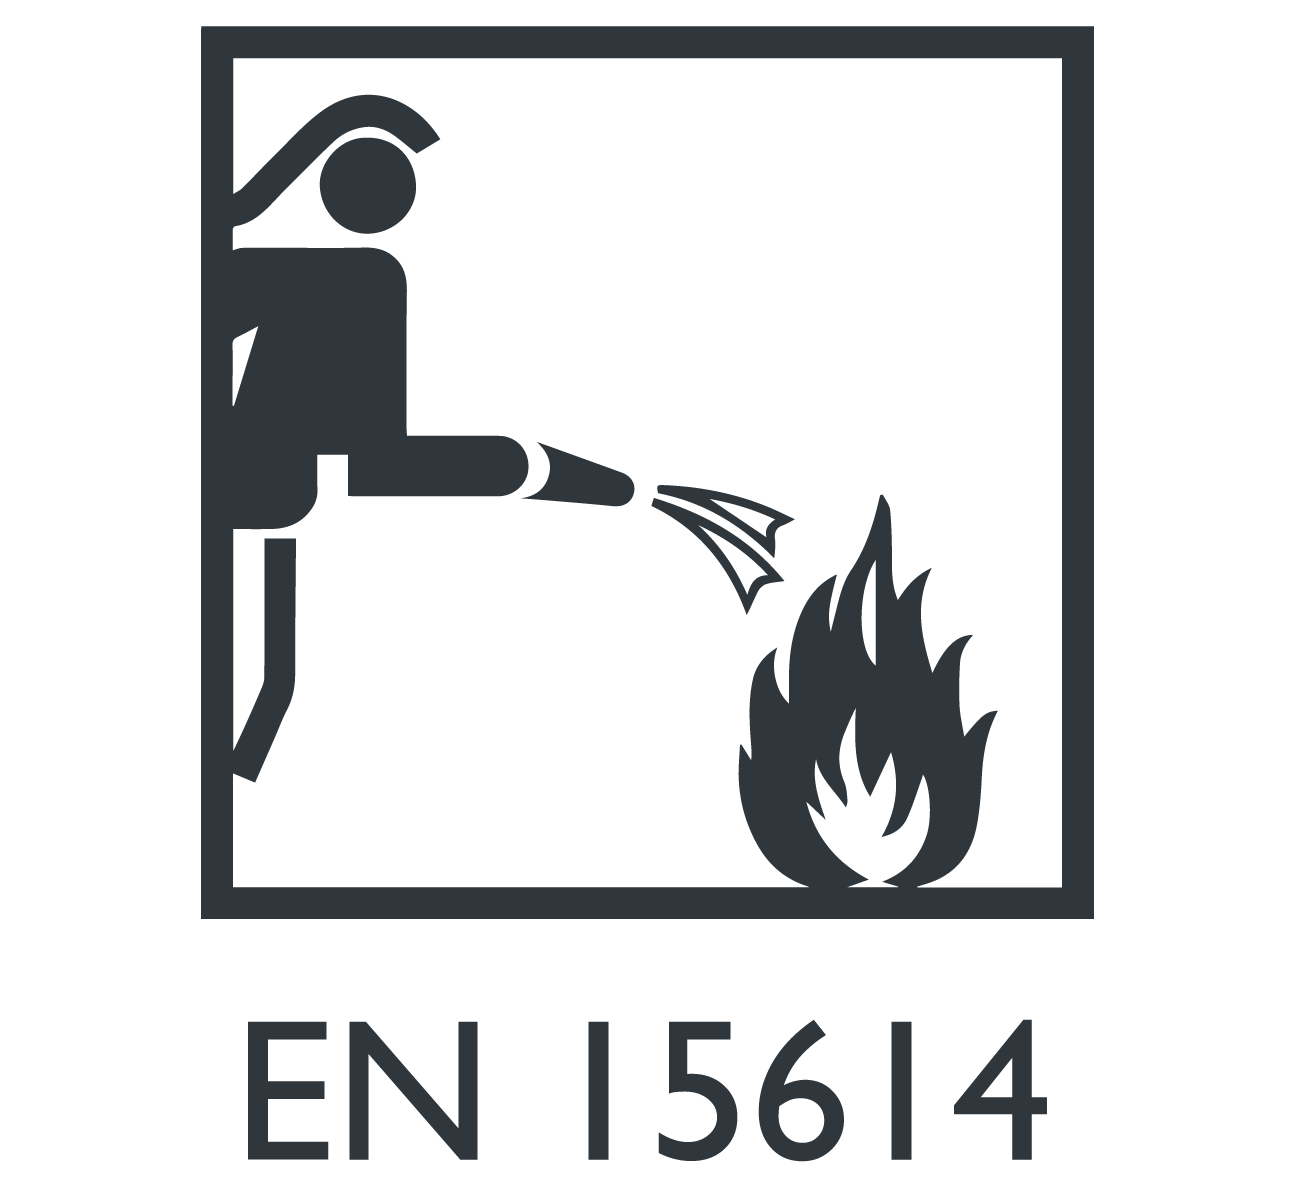 EN 15614 Protective clothing firefighters